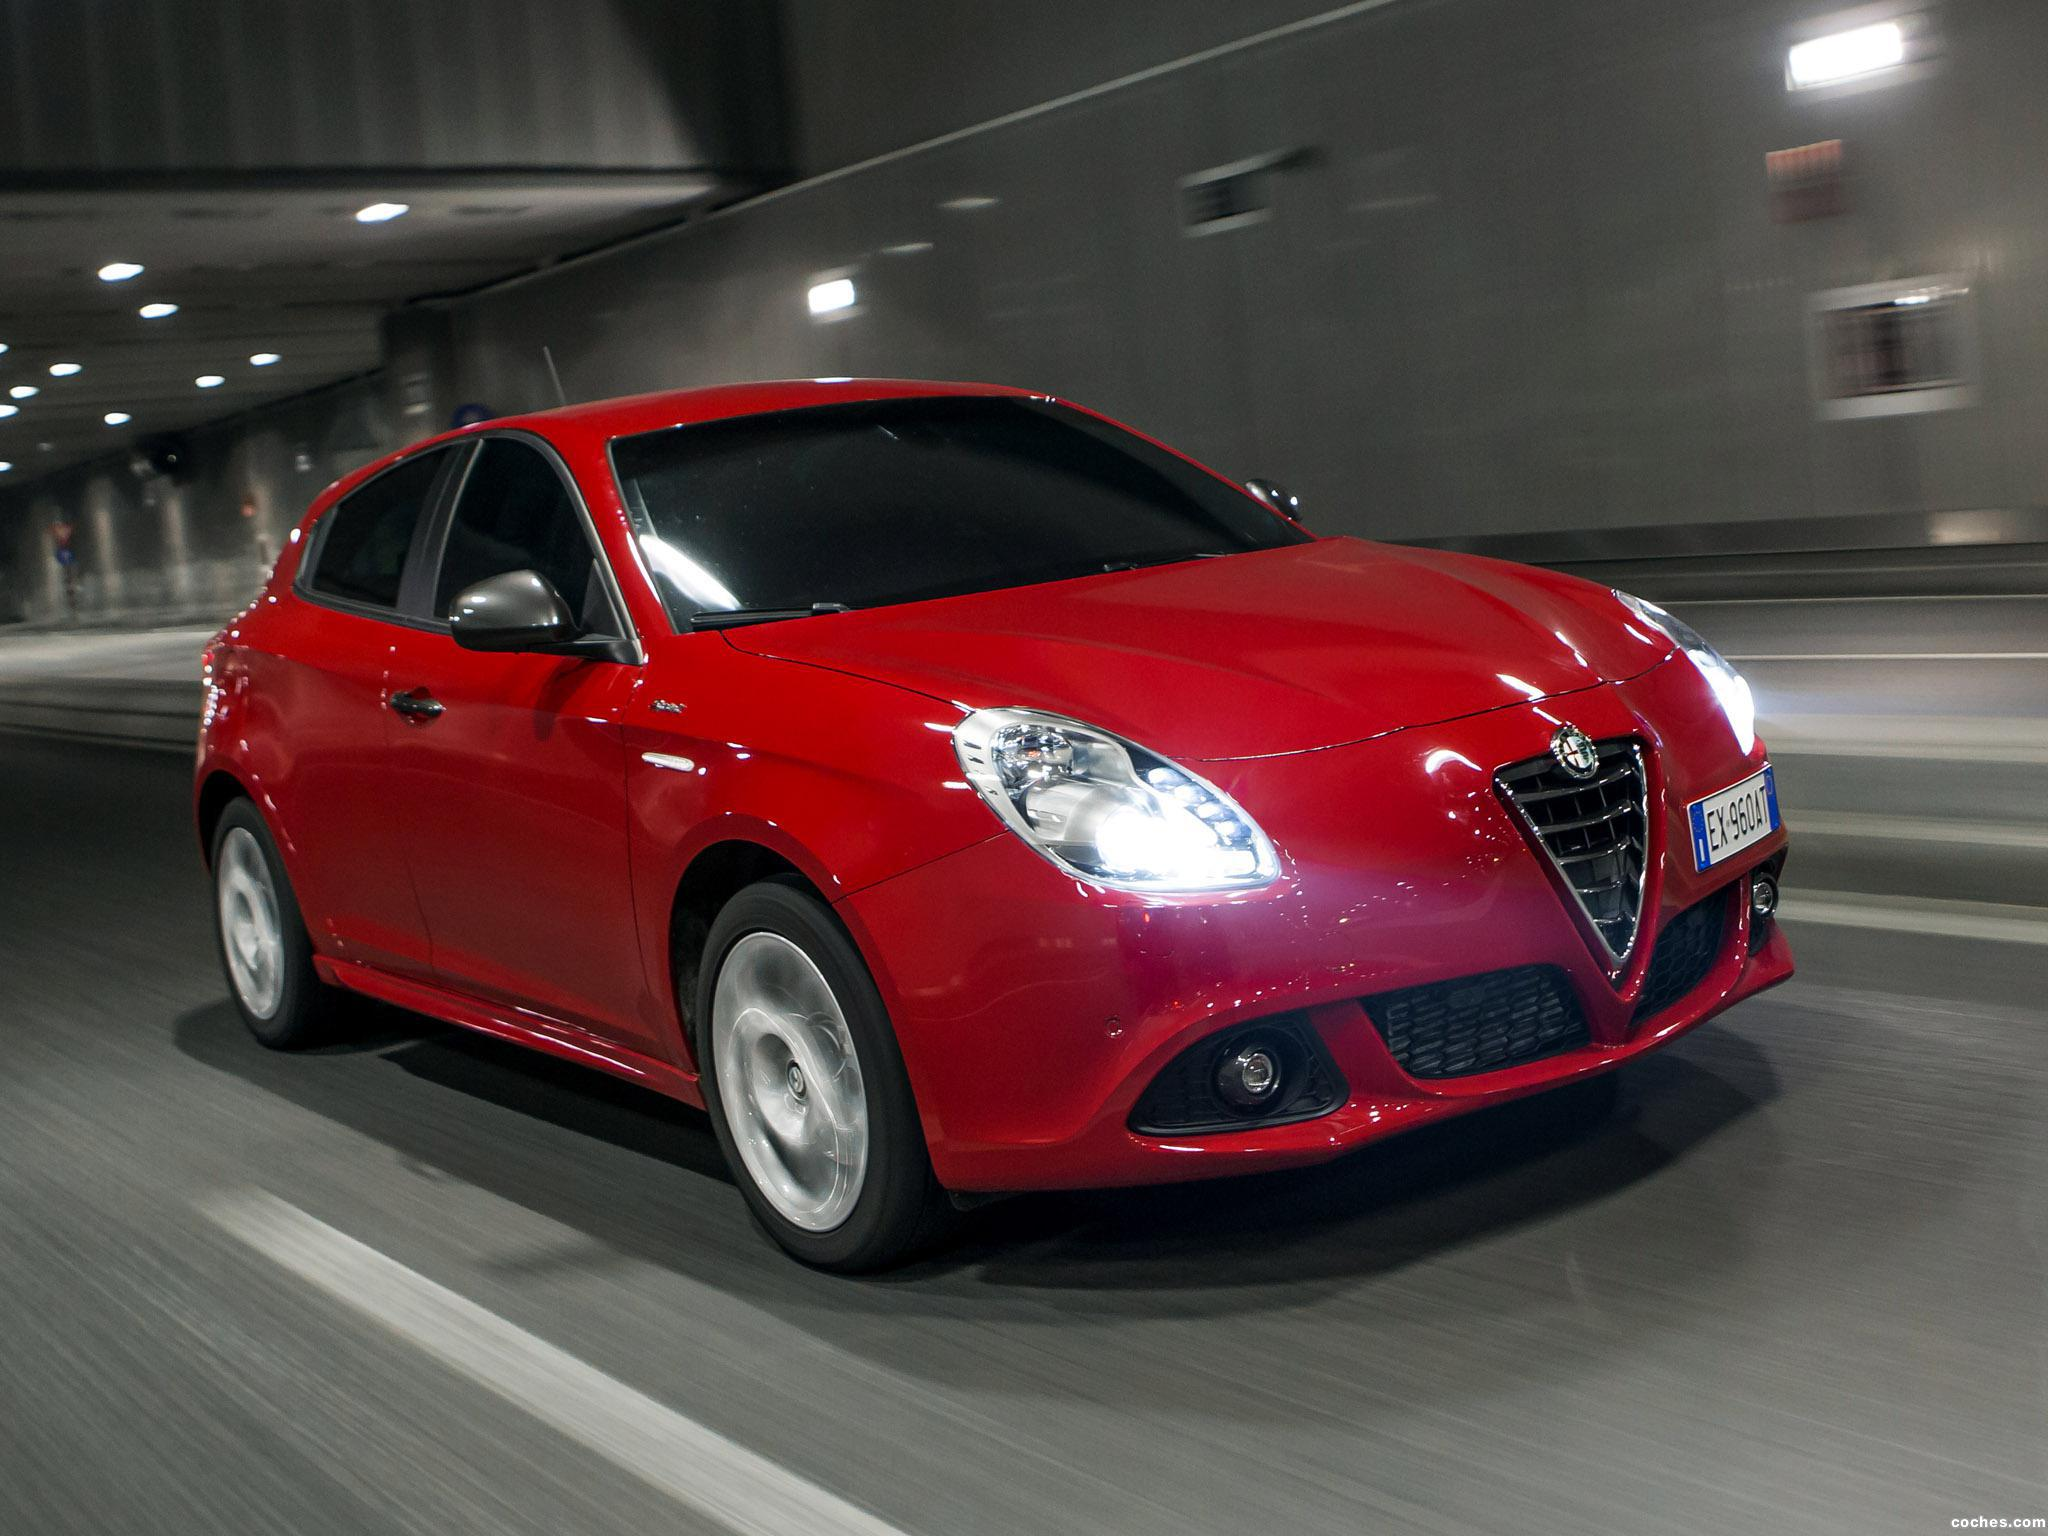 2009 Alfa Romeo Giulietta Sprint photo - 6